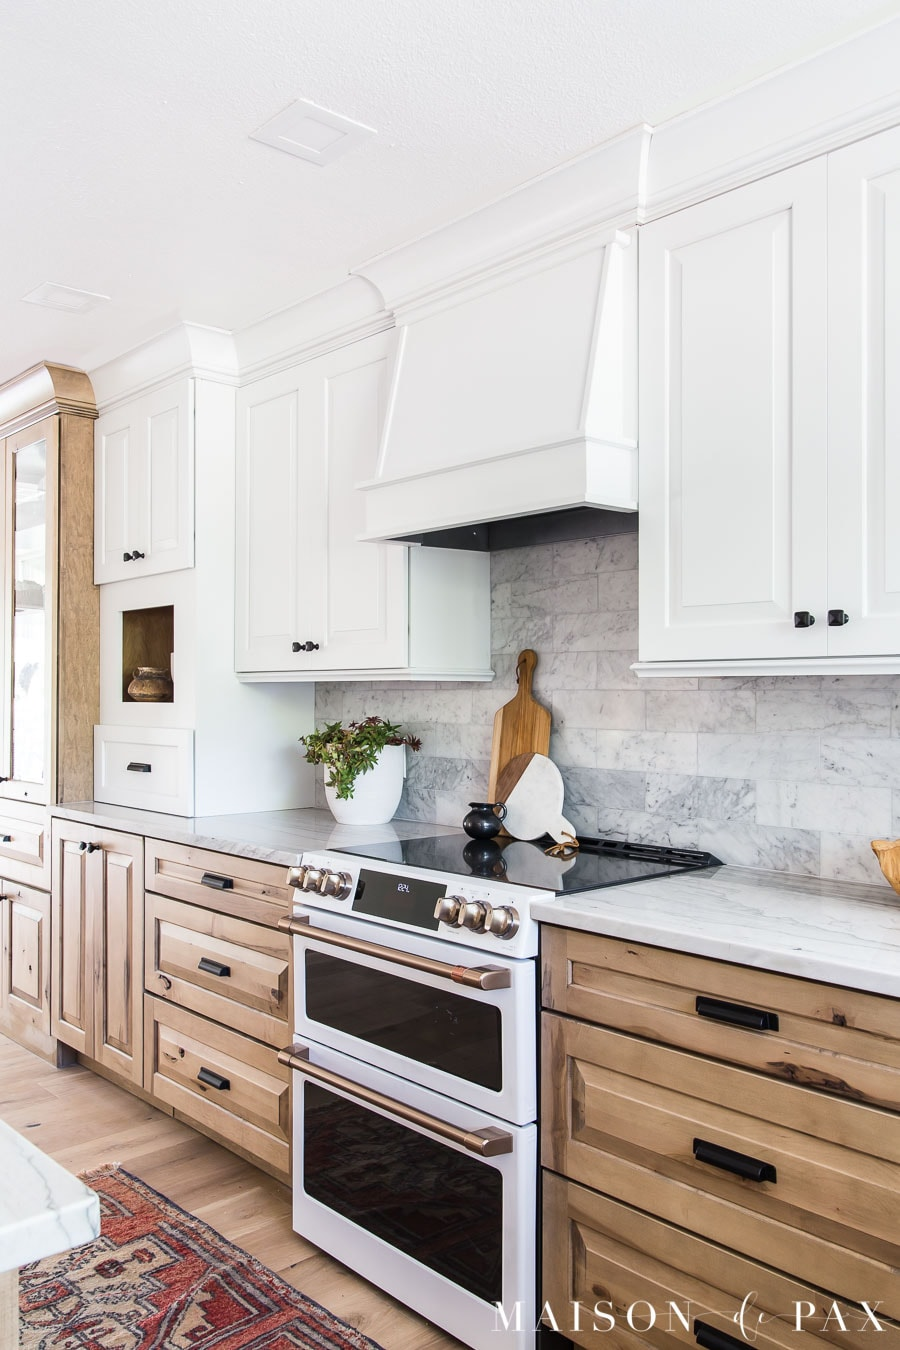 white cabinets and vent hood above range